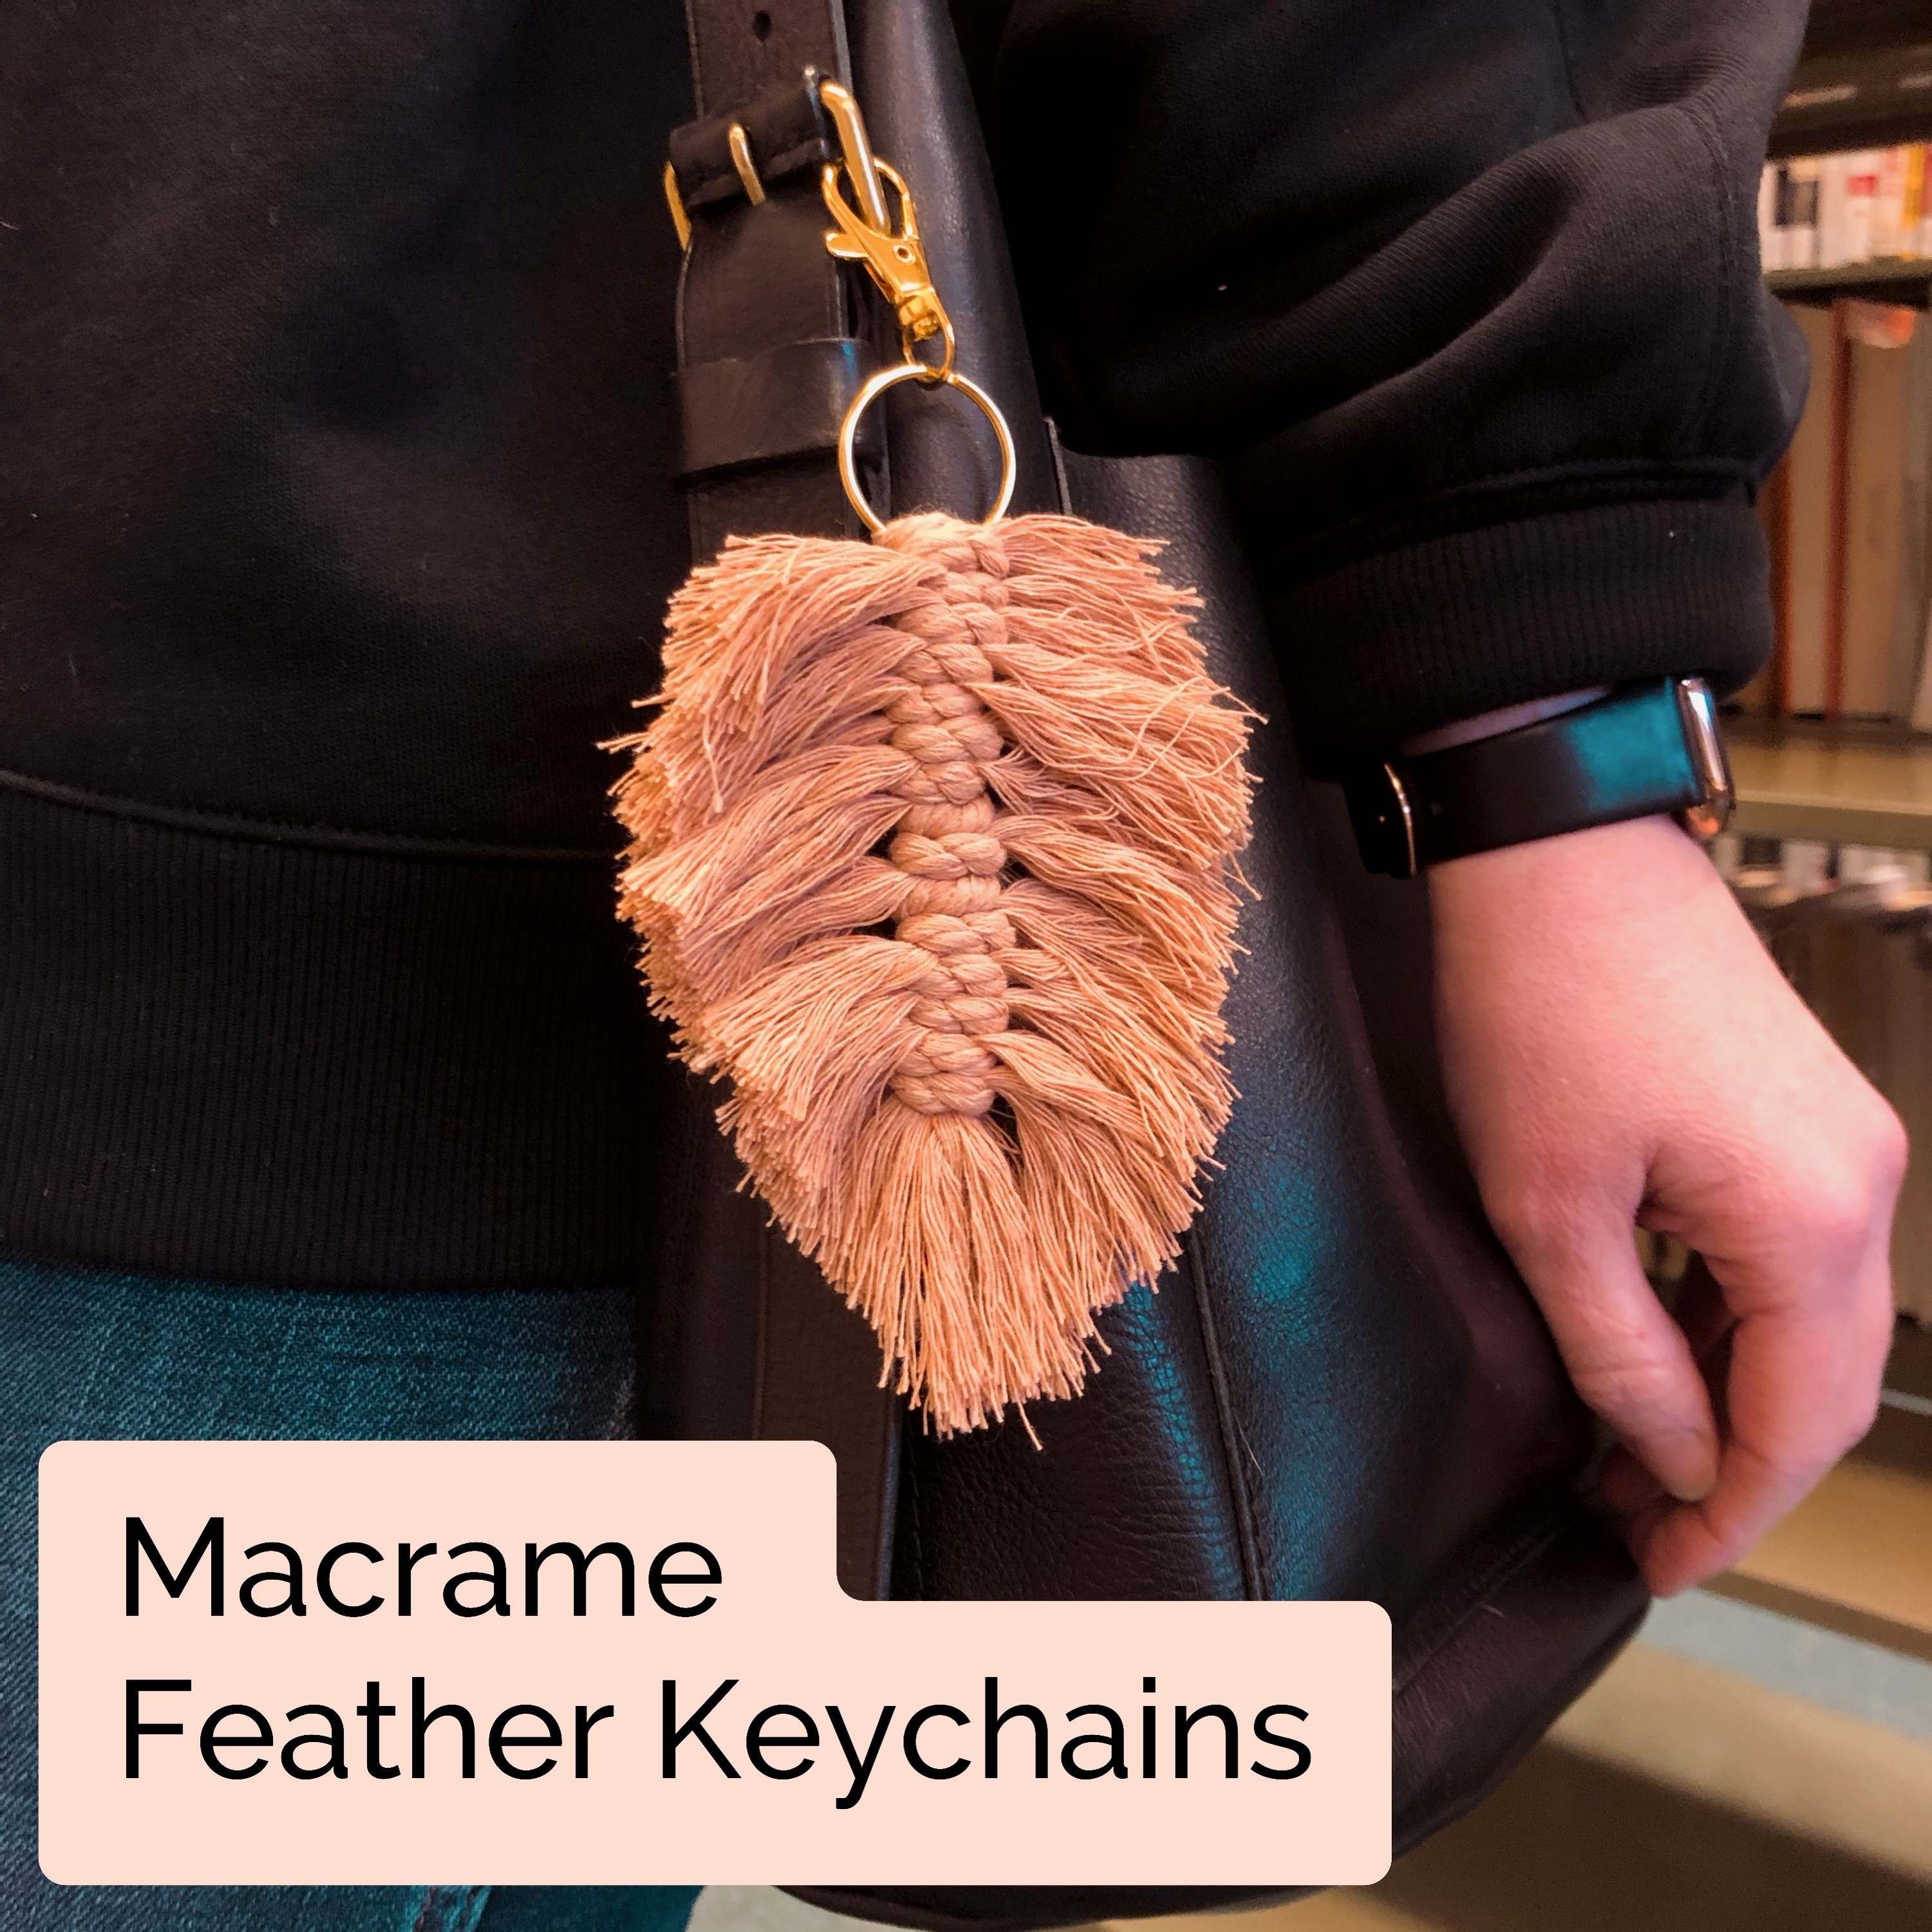 Craft Takeout Macrame Feather Keychains